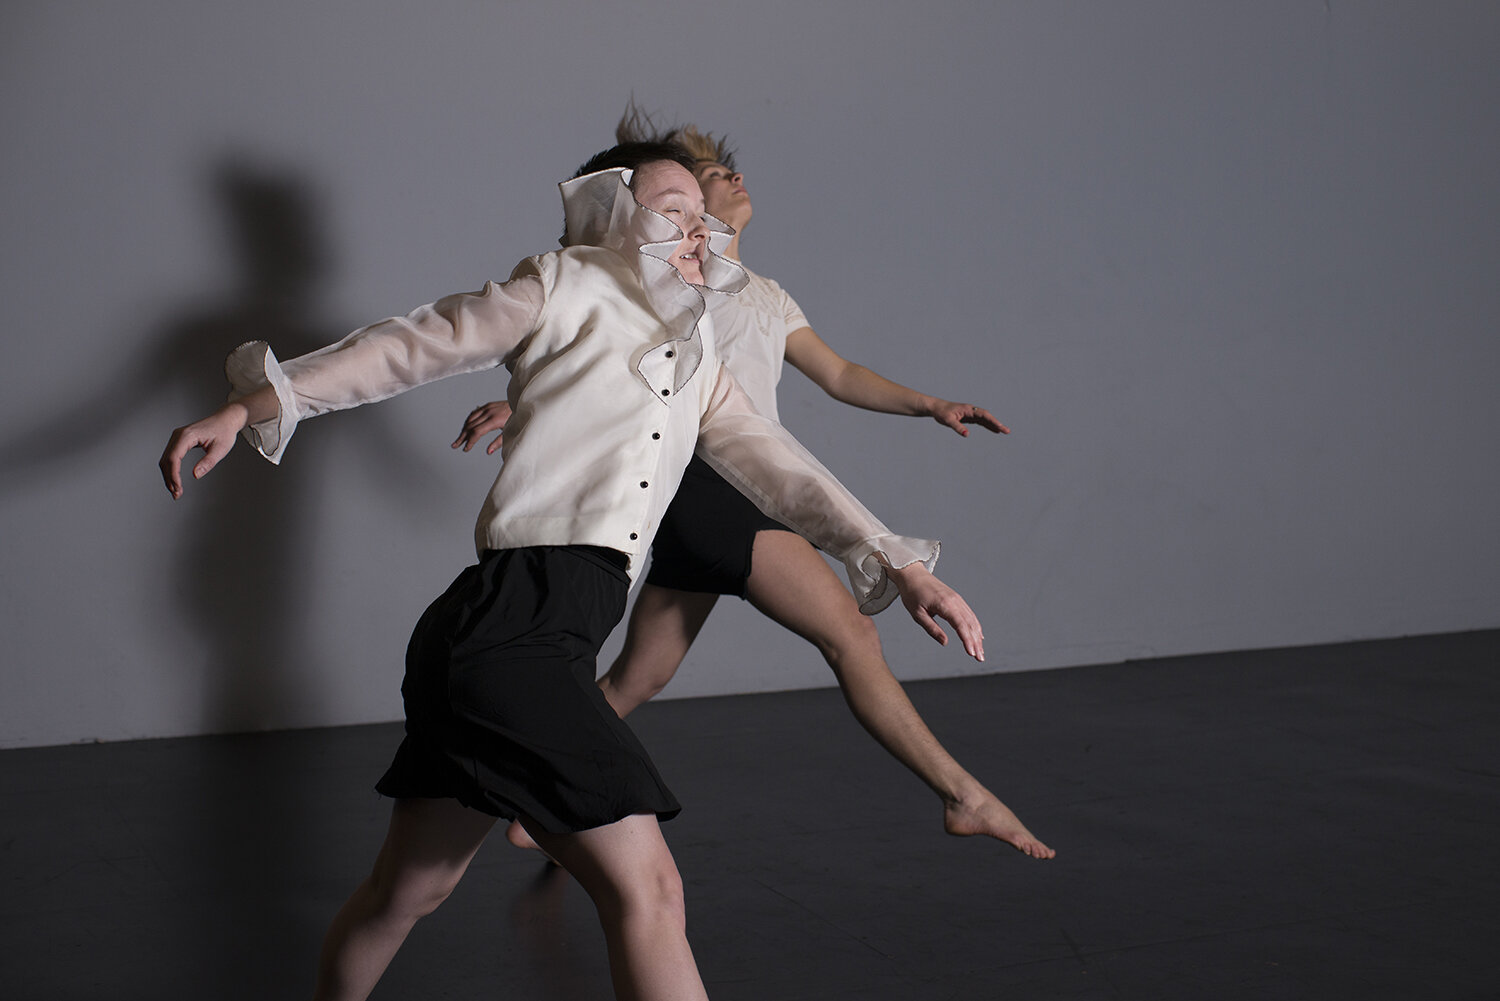 Performance by Seattle-based choreographer Pat Graney